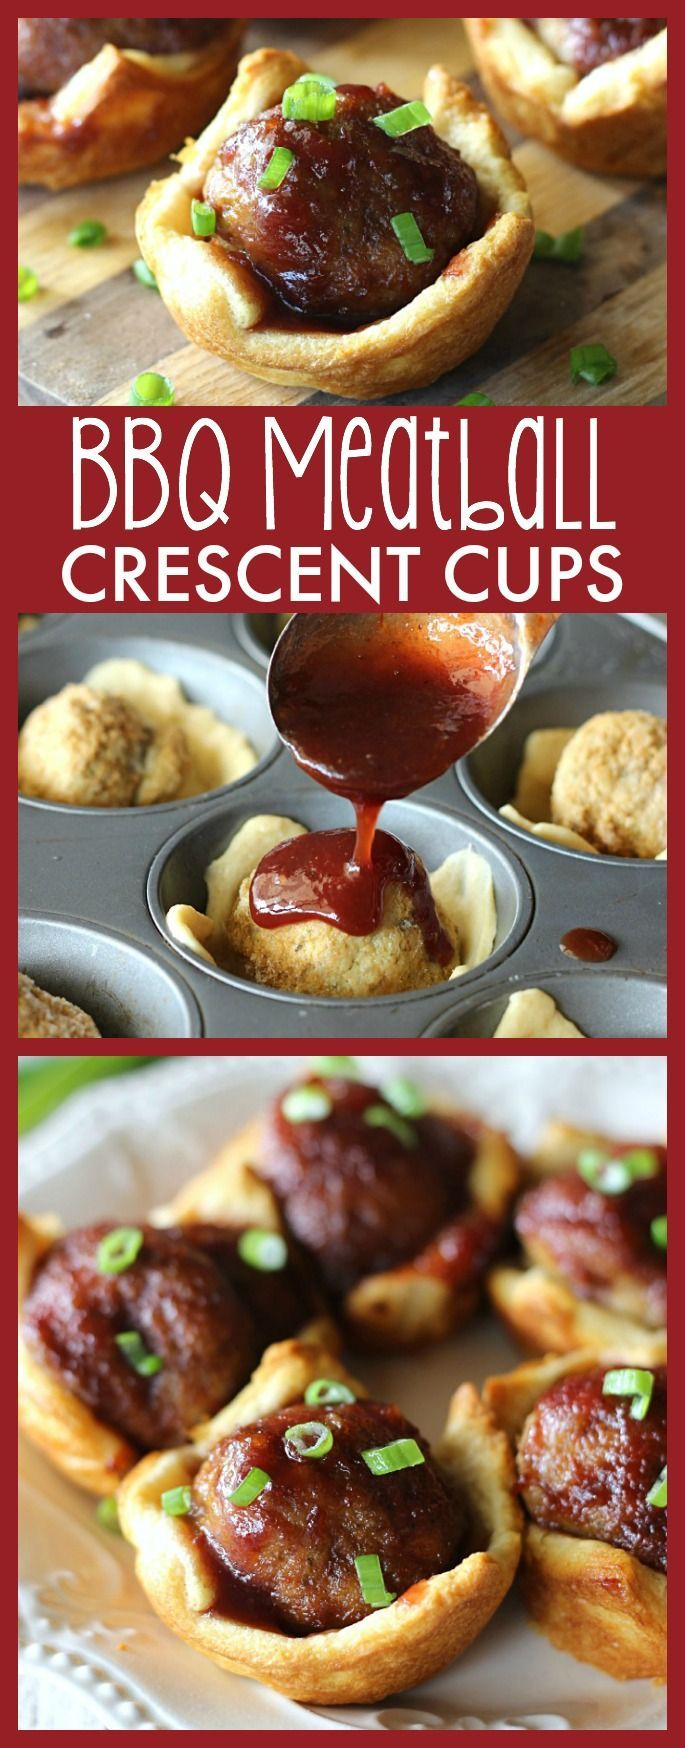 Meatballs topped with a tangy sauce and baked inside a flaky crescent crust. This quick and easy appetizer is sure to please this holiday season! #warmtraditions